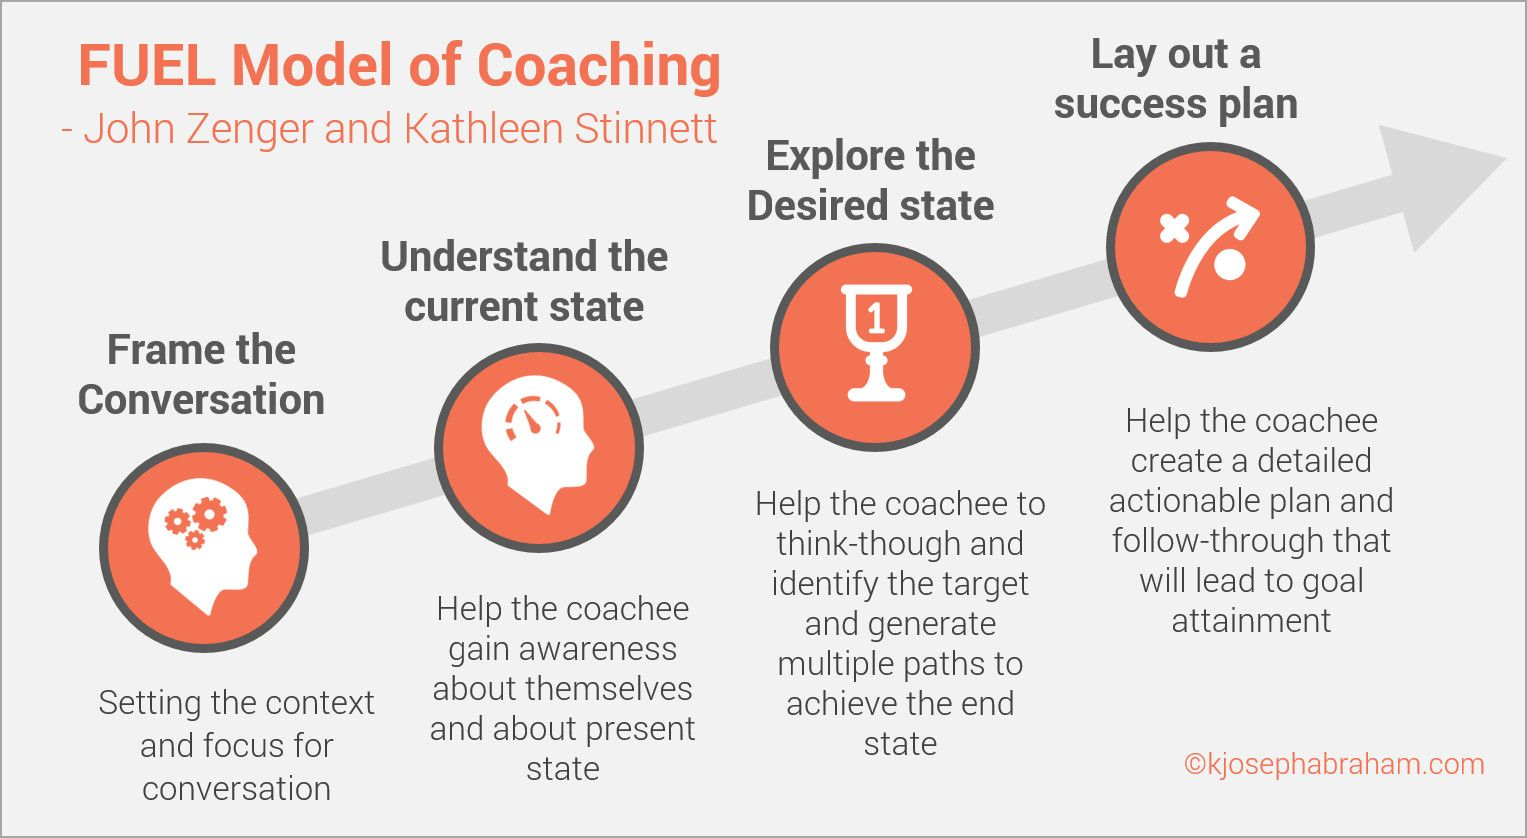 7 How To Use The Fuel Model Of Coaching A Step By Step